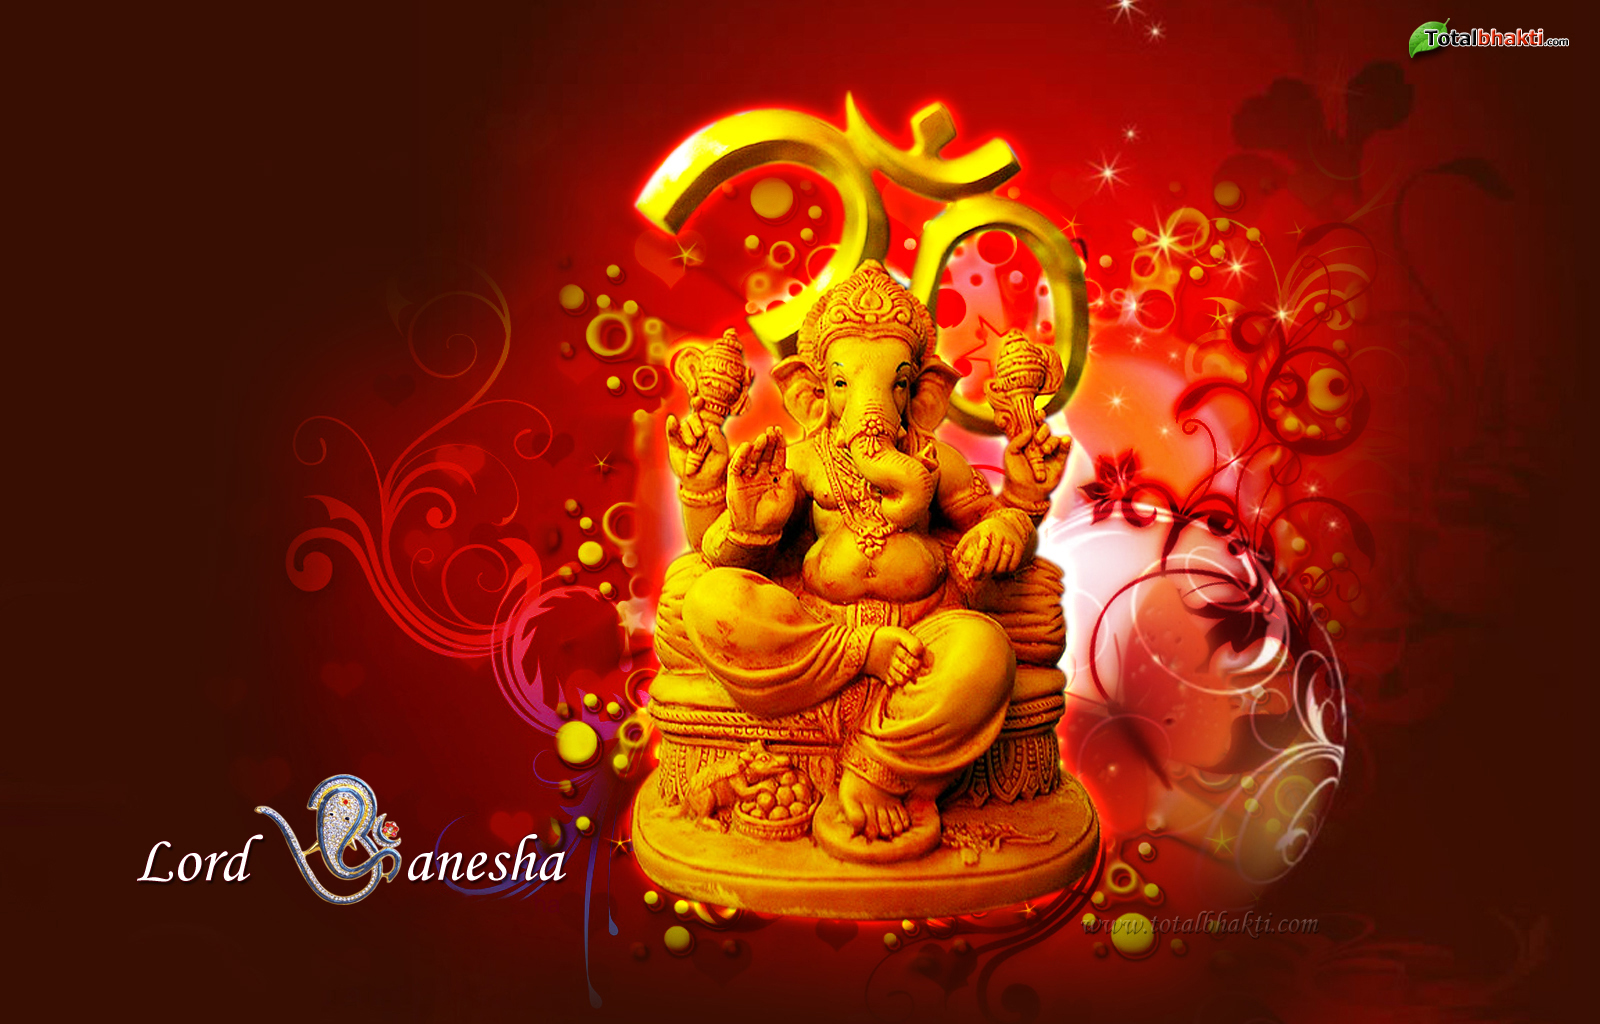 lord ganesha wallpaper computer background - photo #15